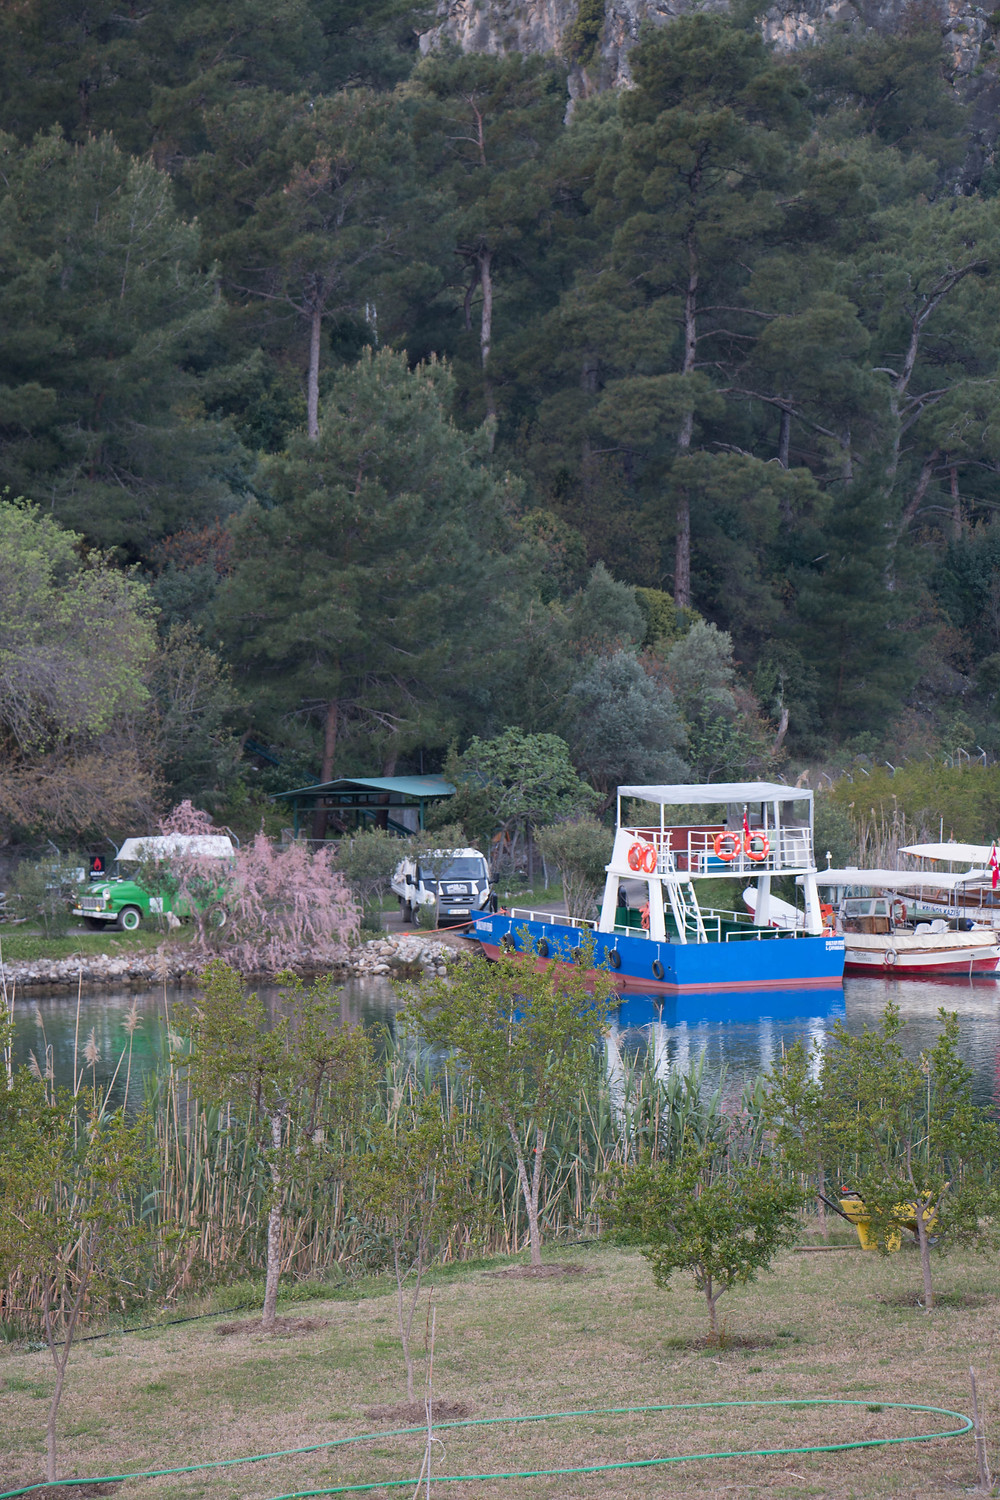 The Dalyan Ferry